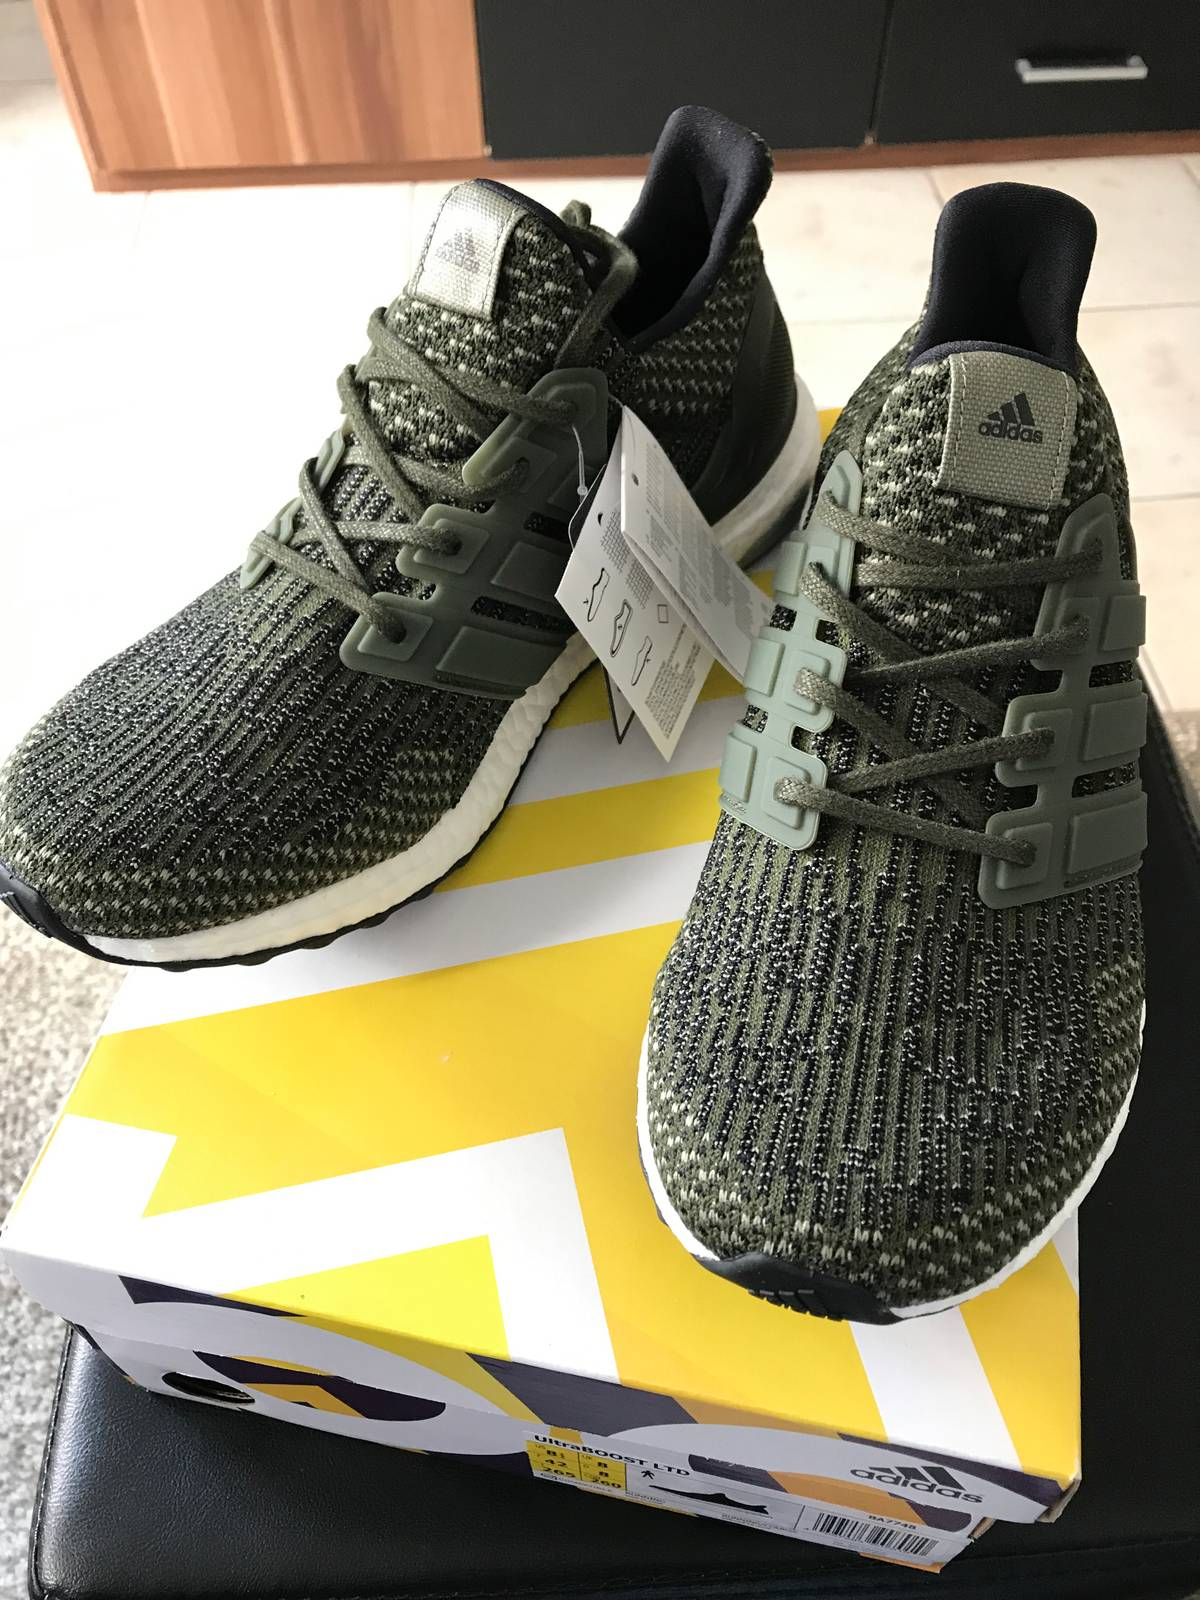 2017 Men'S New Ultra Boost 3.0 Primeknit Running Shoes